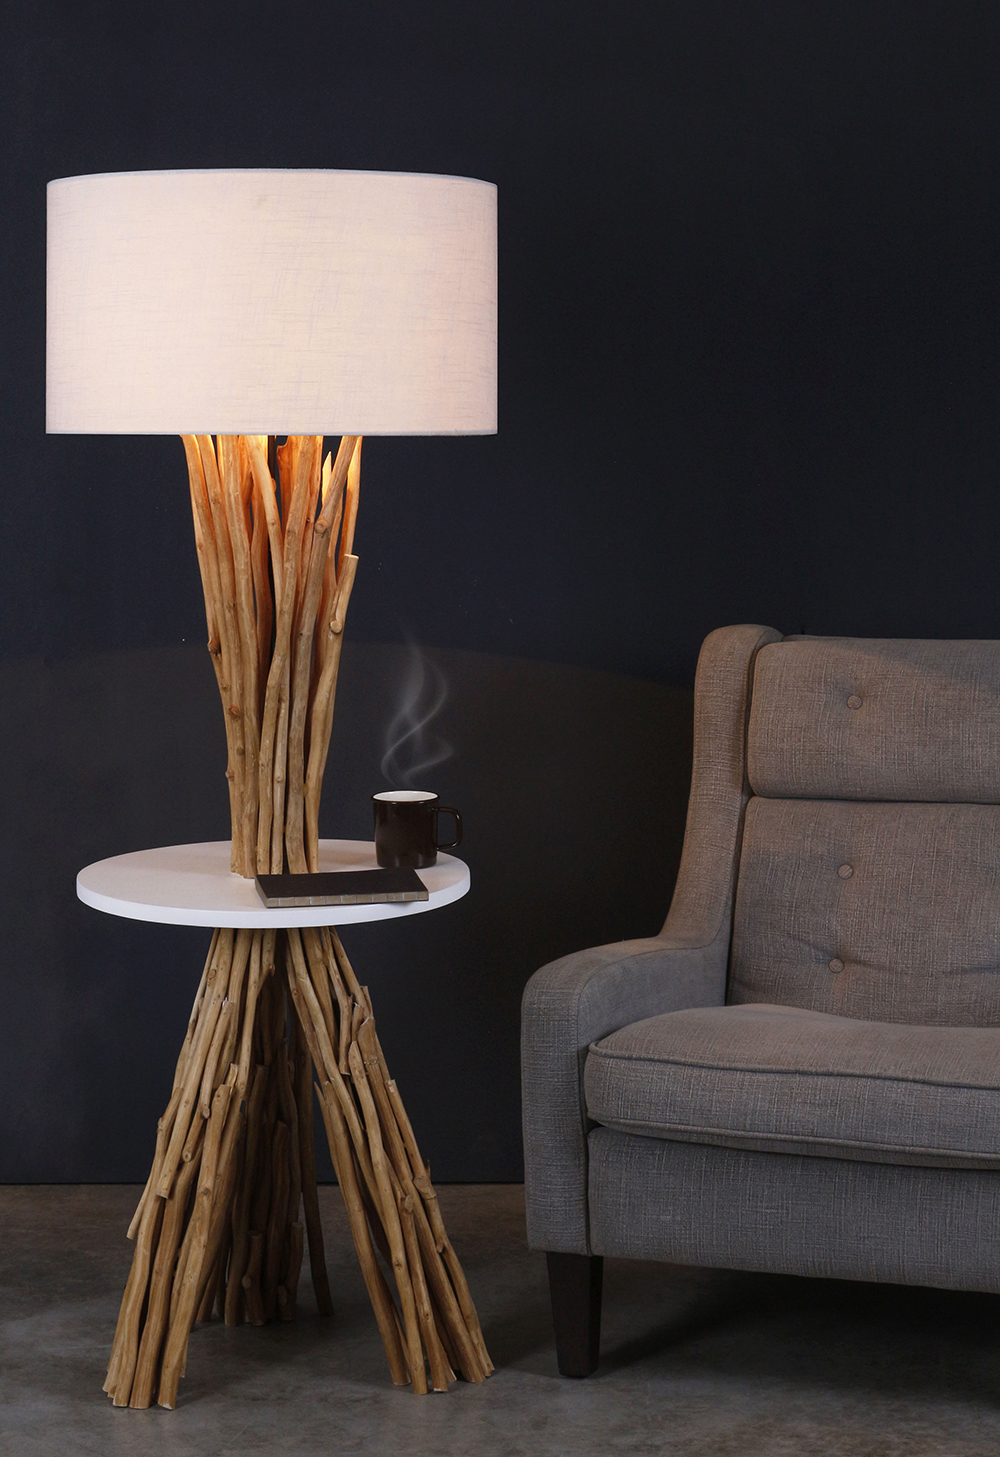 Woodland table floor lamp product photo #2